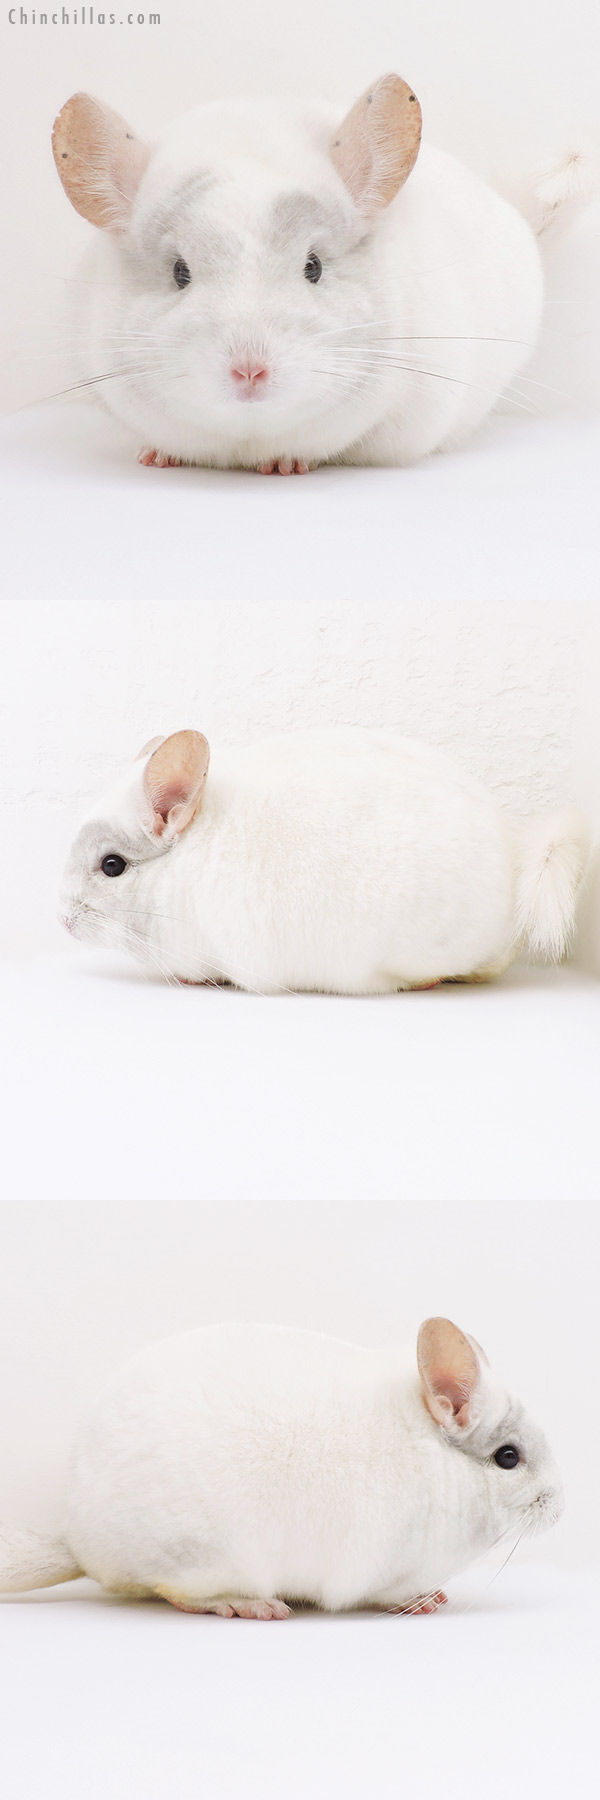 16126 Blocky Show Quality Pink White Male Chinchilla